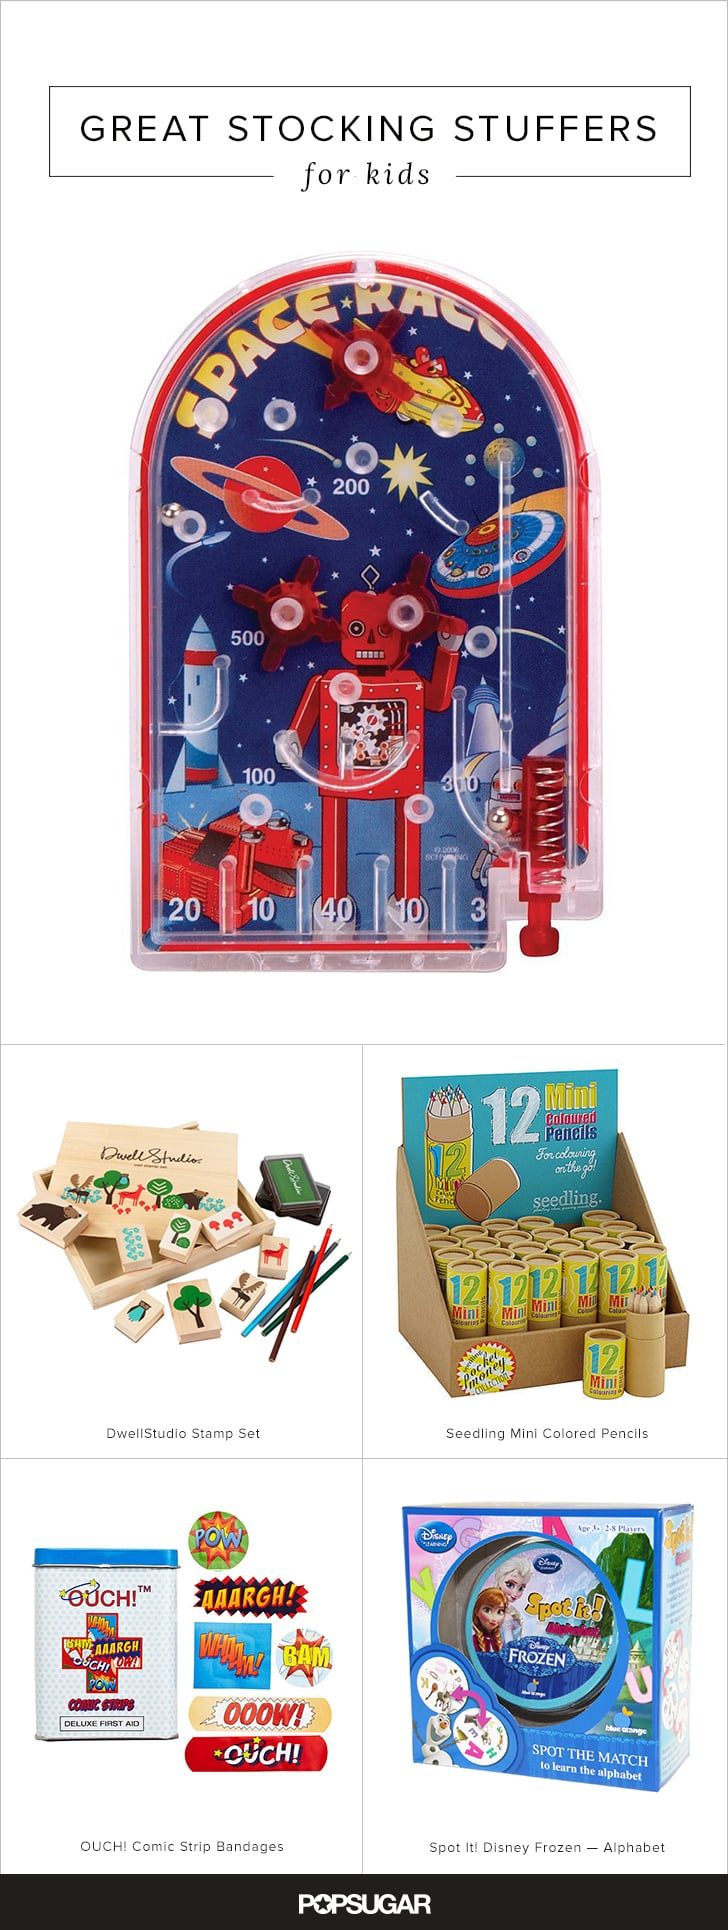 42 Great Last-Minute Gifts to Fill Kids' Stockings